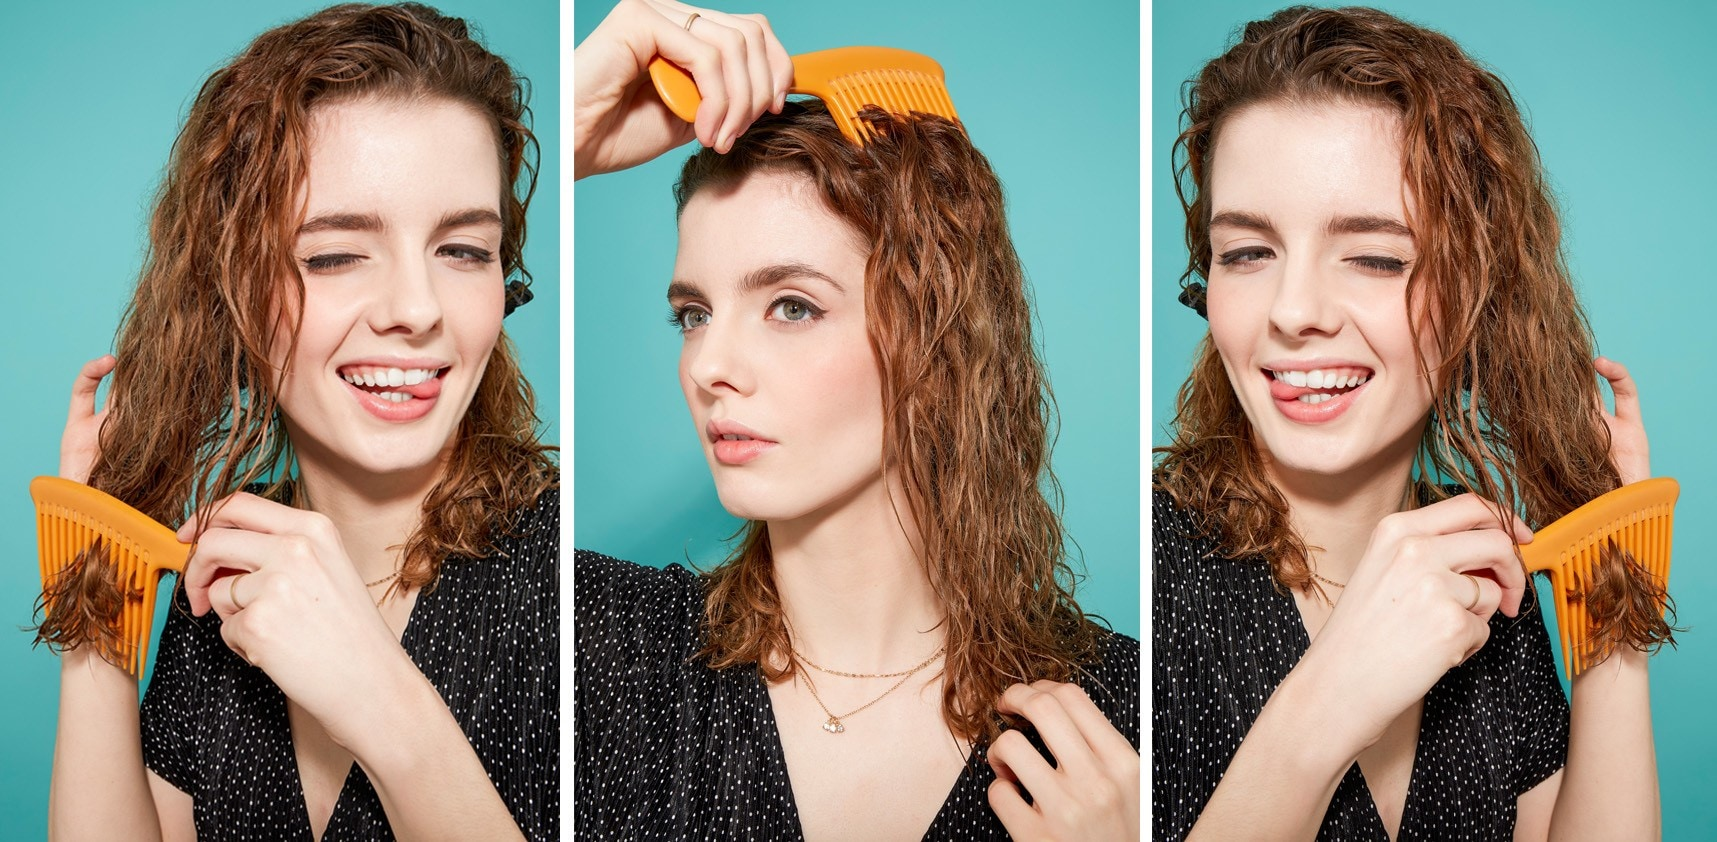 Woman with damp curly auburn hair combing/brushing her hair